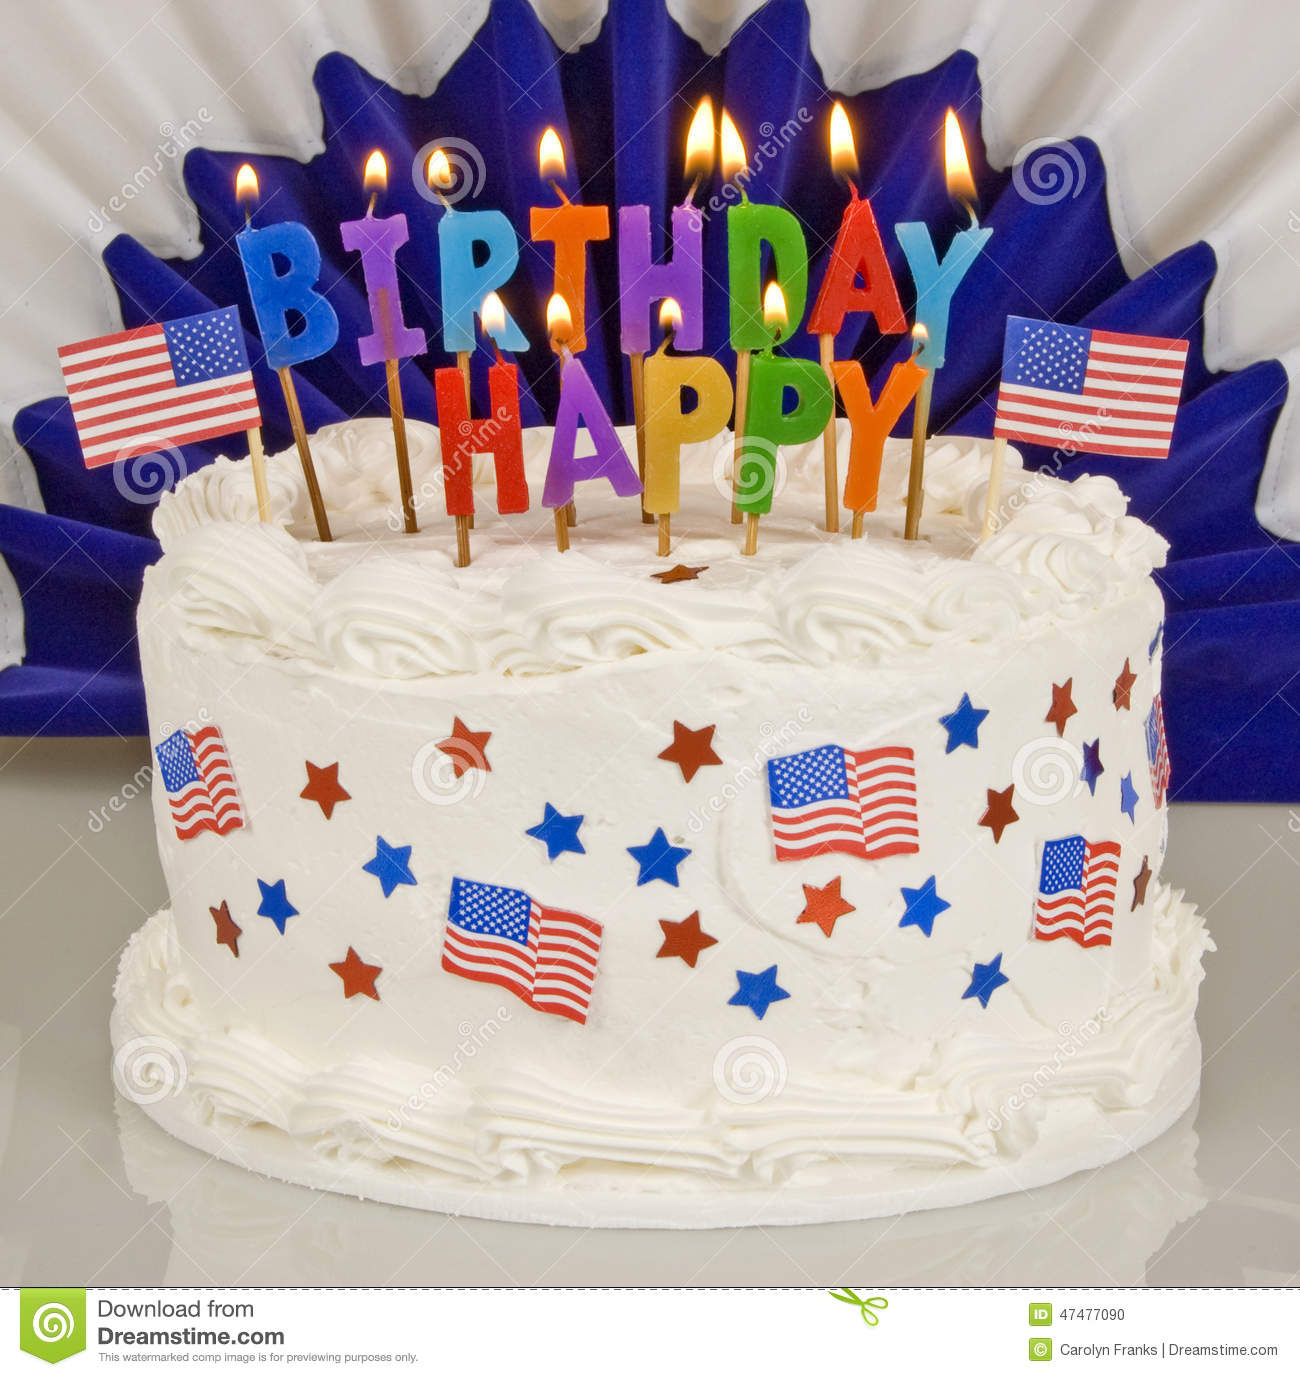 Birthday Cake Pic Download Patriotic 4th Of July Birthday Cake Stock Photo Image Of Holiday